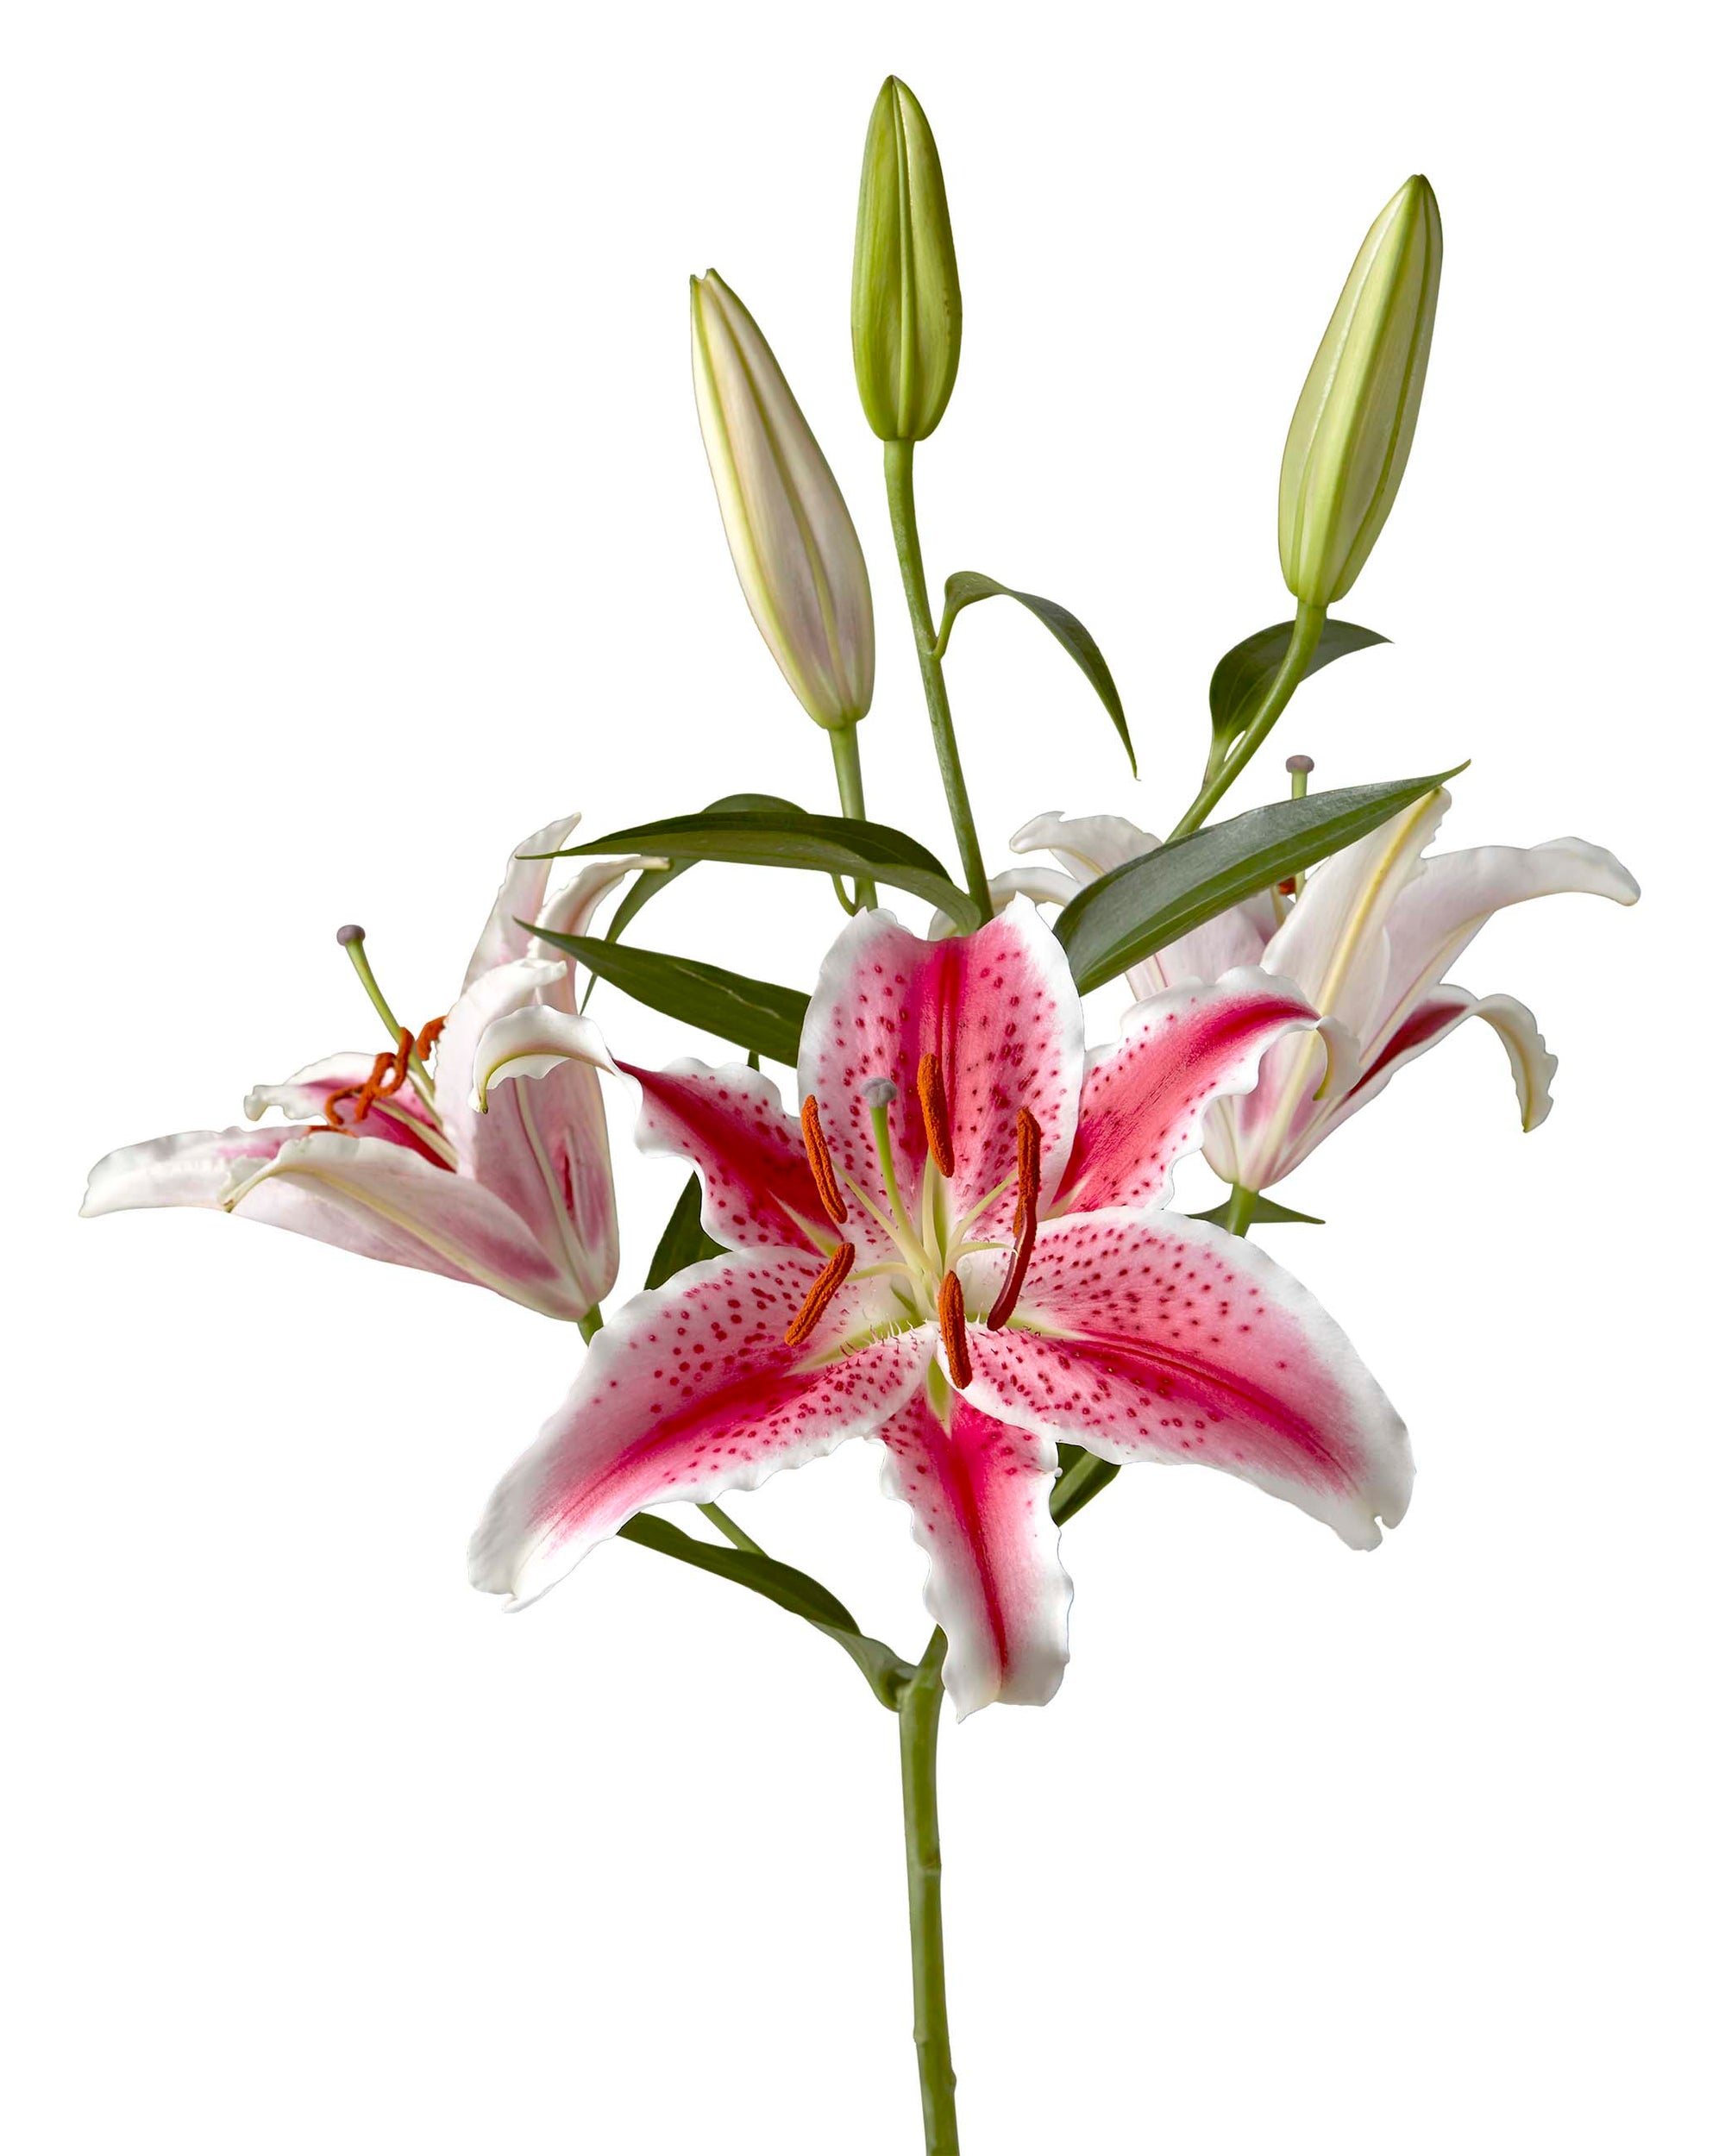 Starfighter Oriental Lily 3-5 Bloom